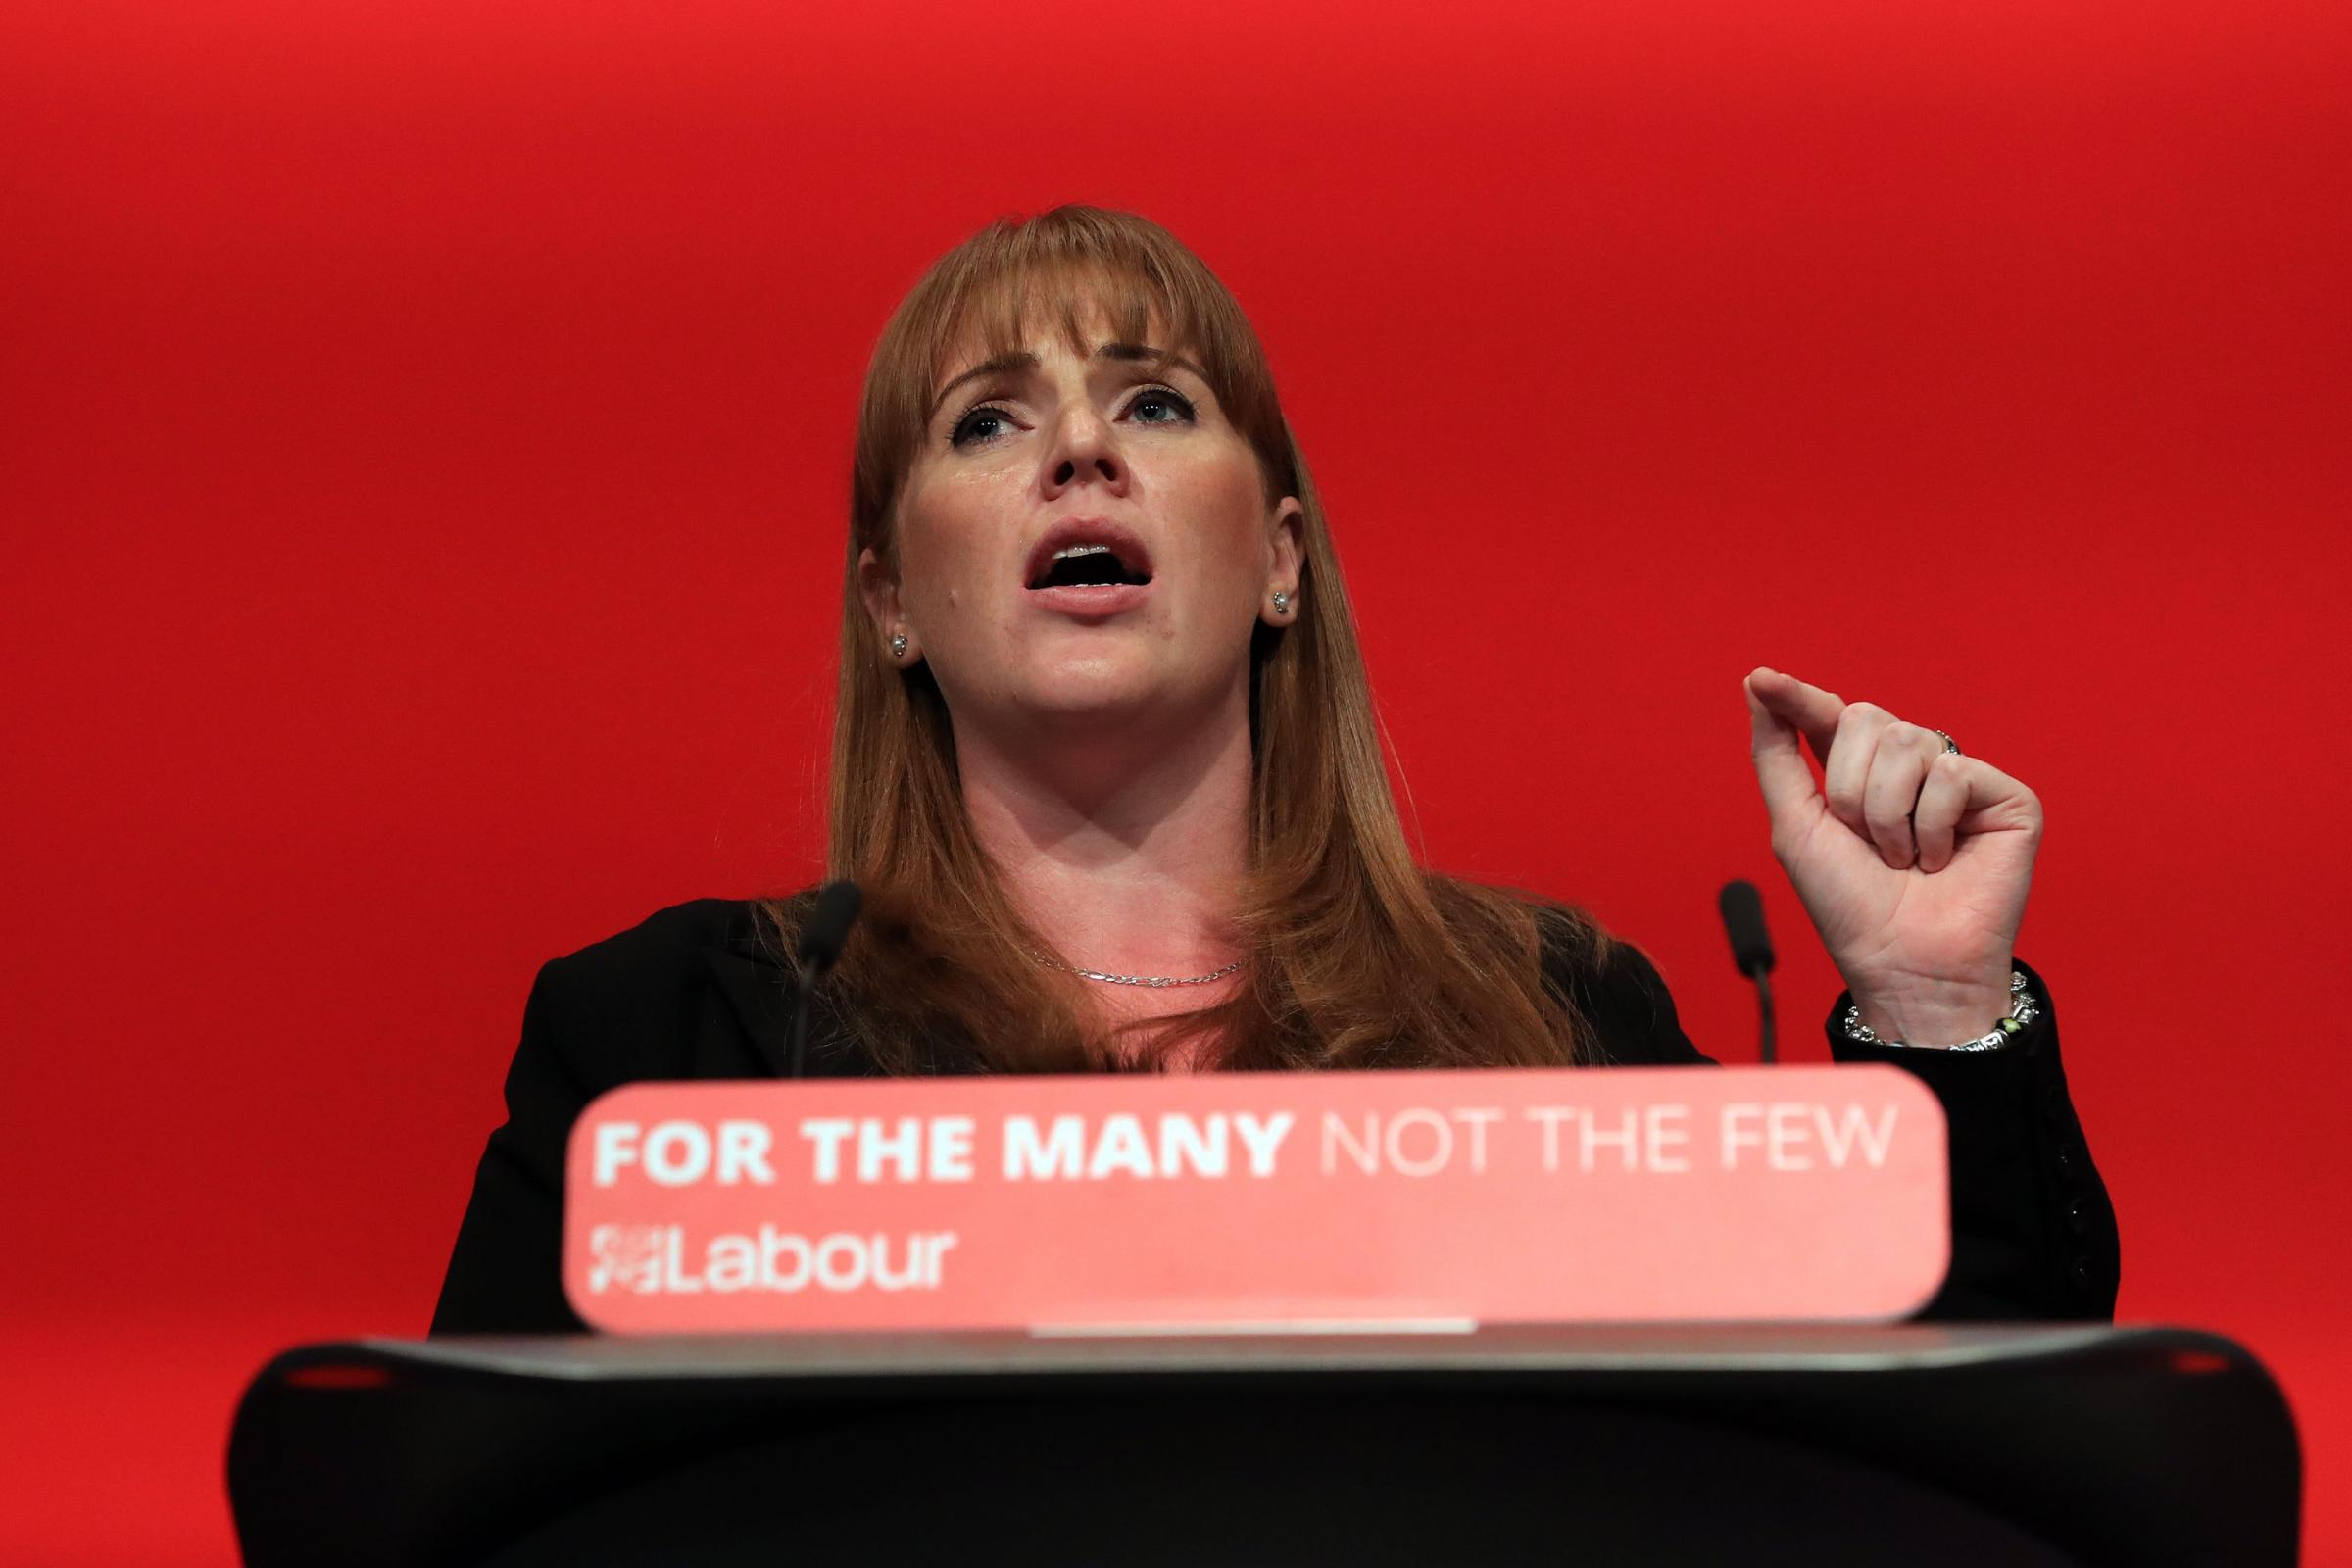 Schools 'forced to beg for donations despite end of austerity pledge'